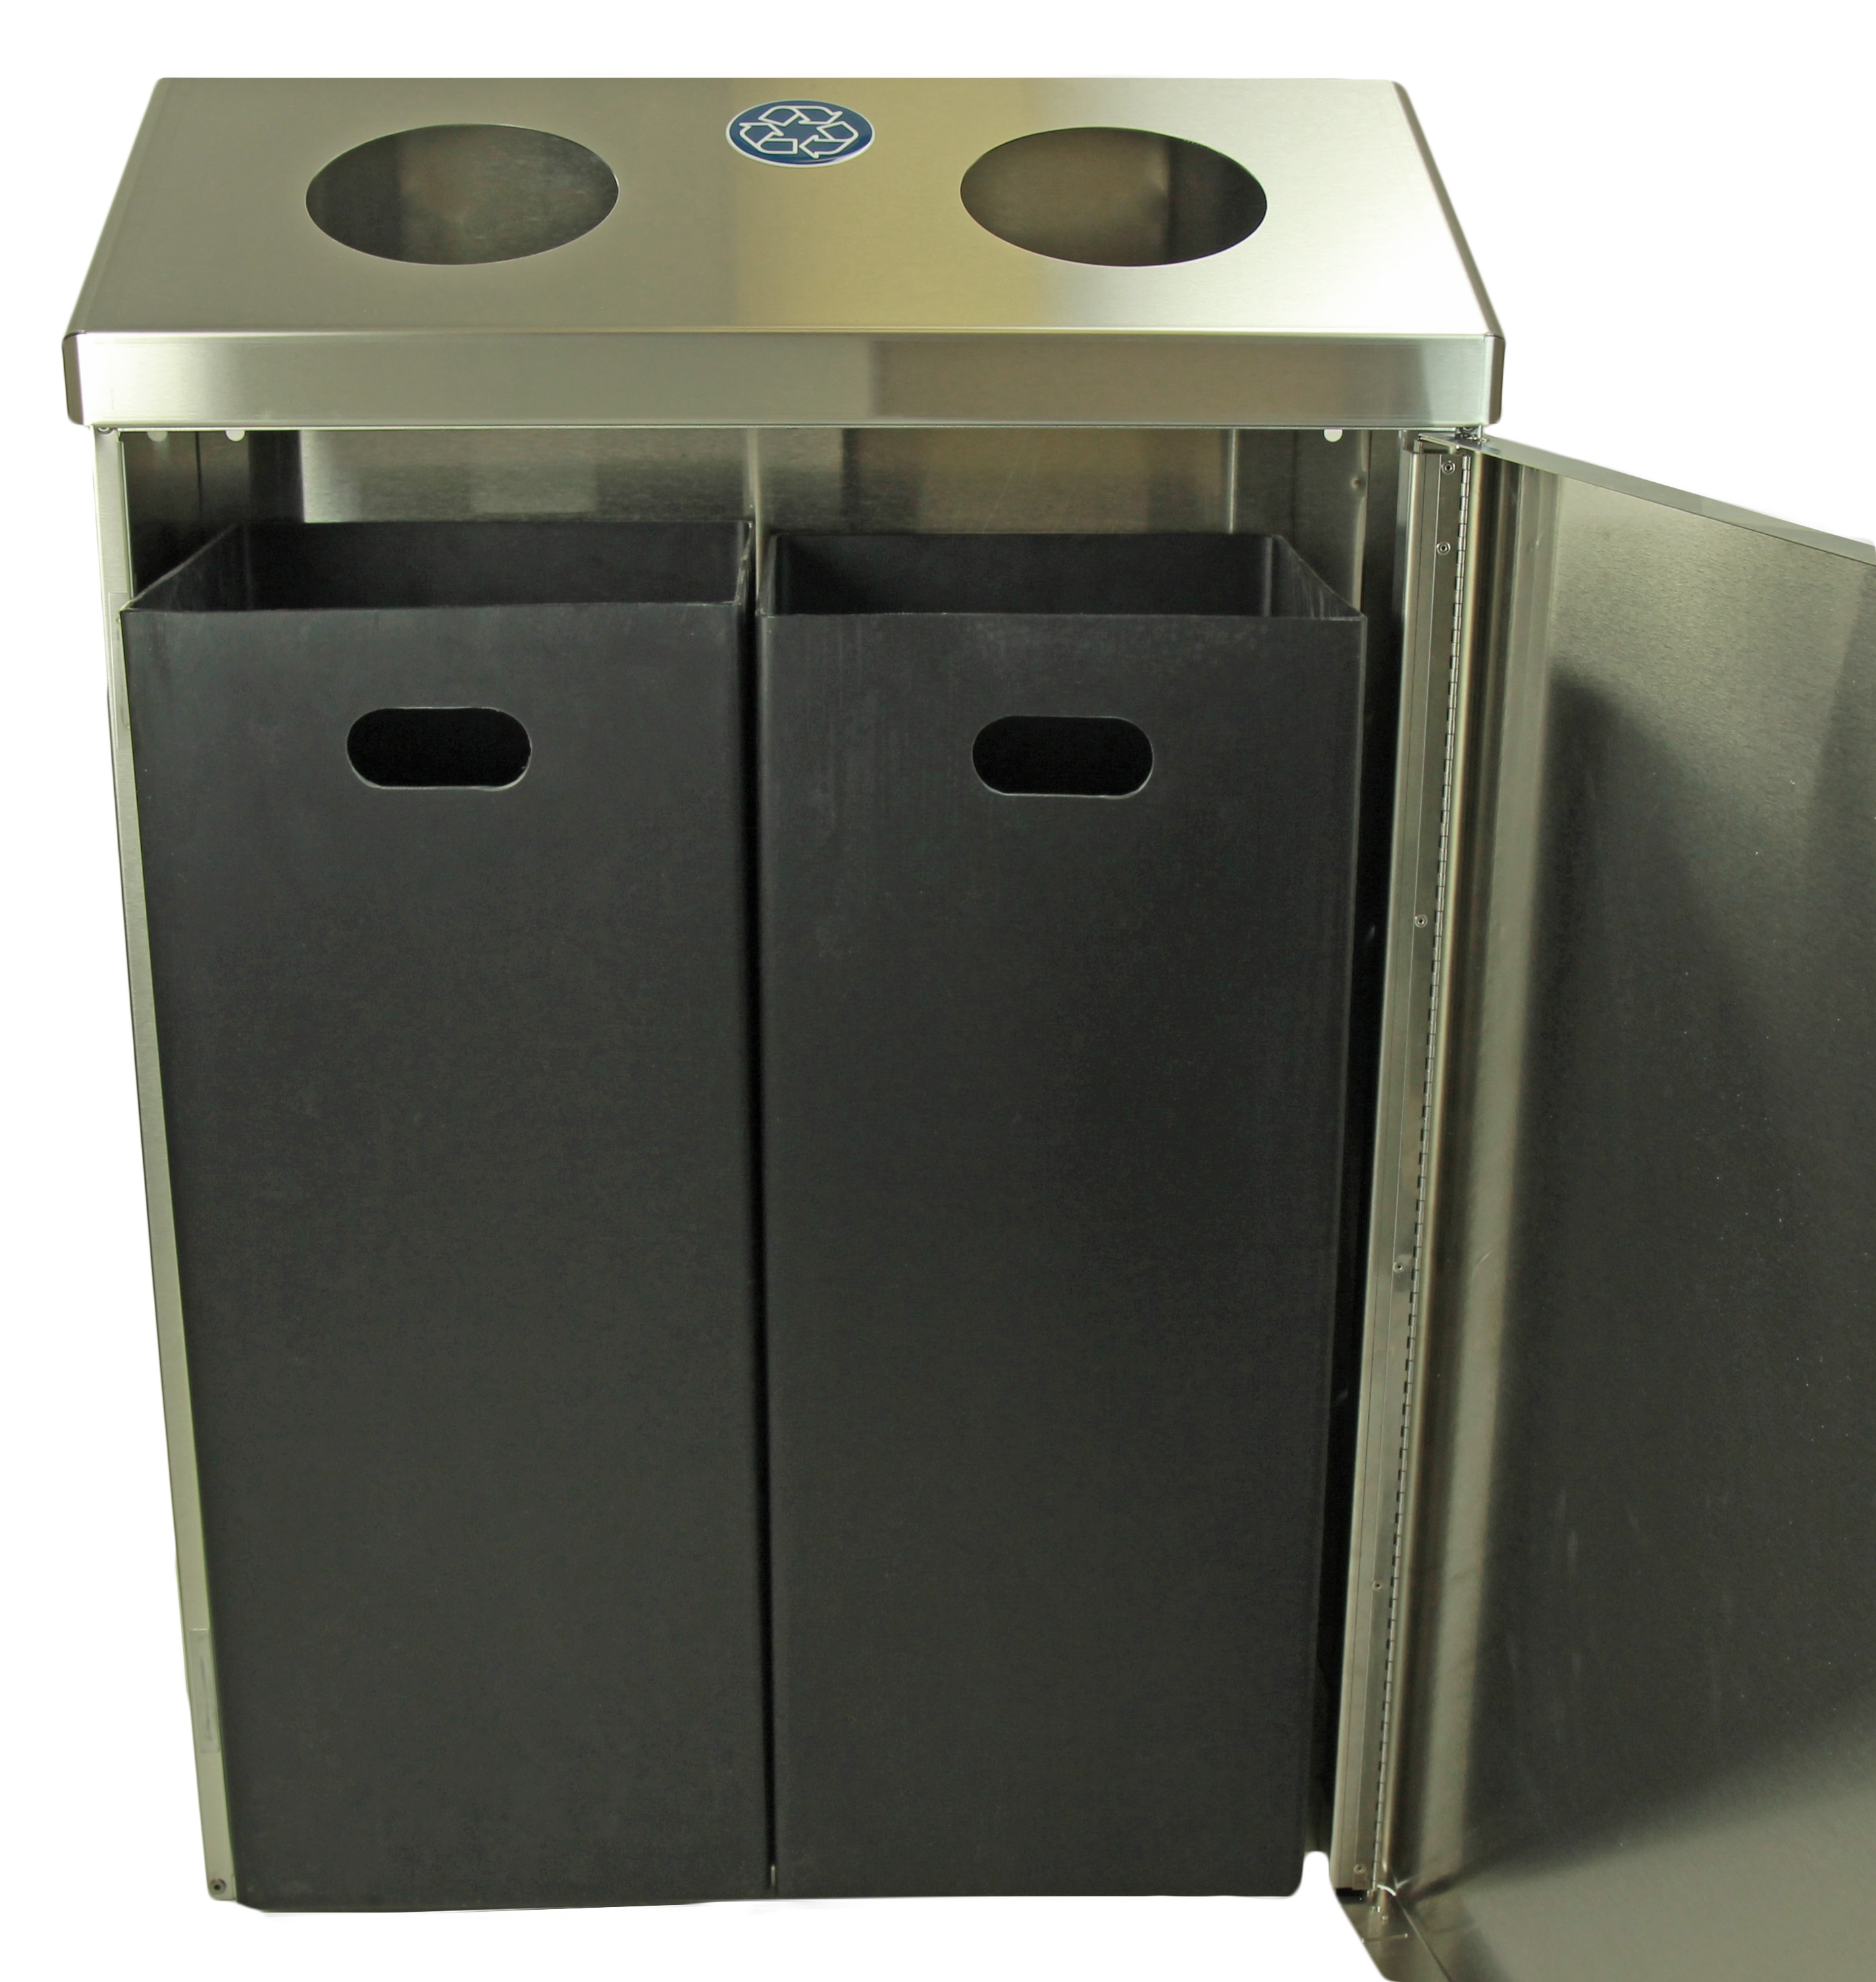 315 Stainless Steel Modular Recycling Station Waste Wise